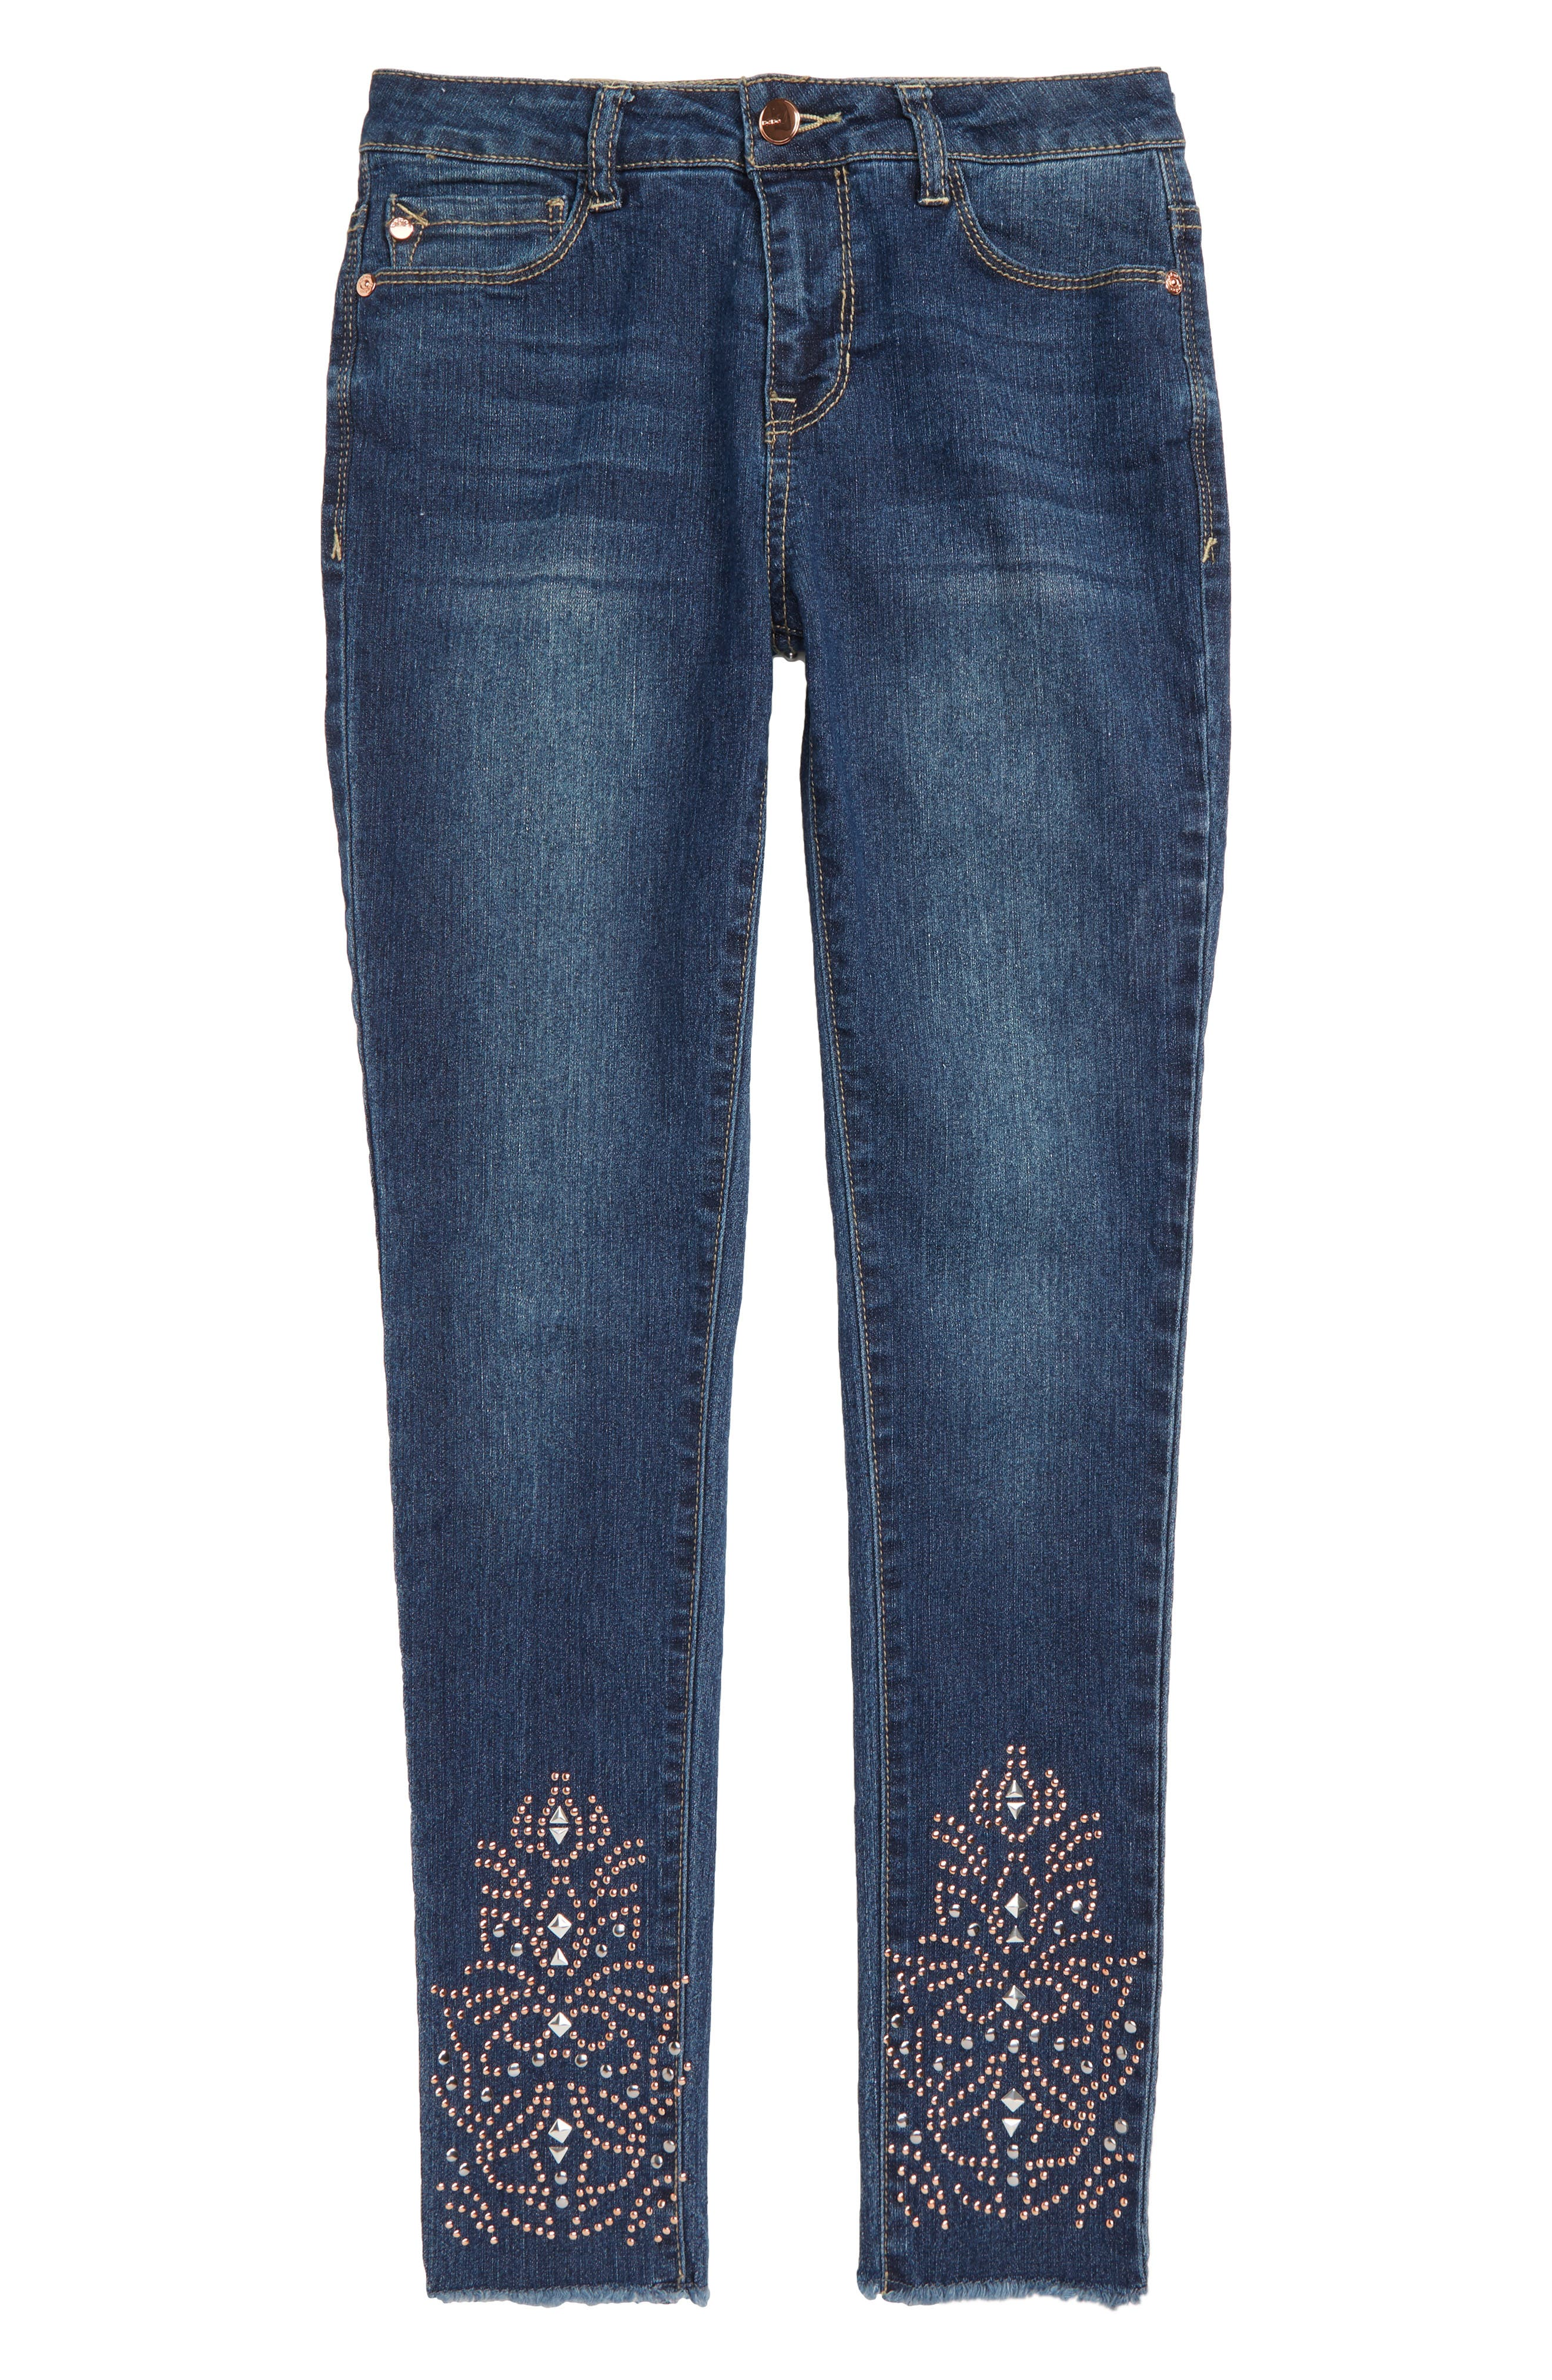 Studded Jeans,                             Main thumbnail 1, color,                             402